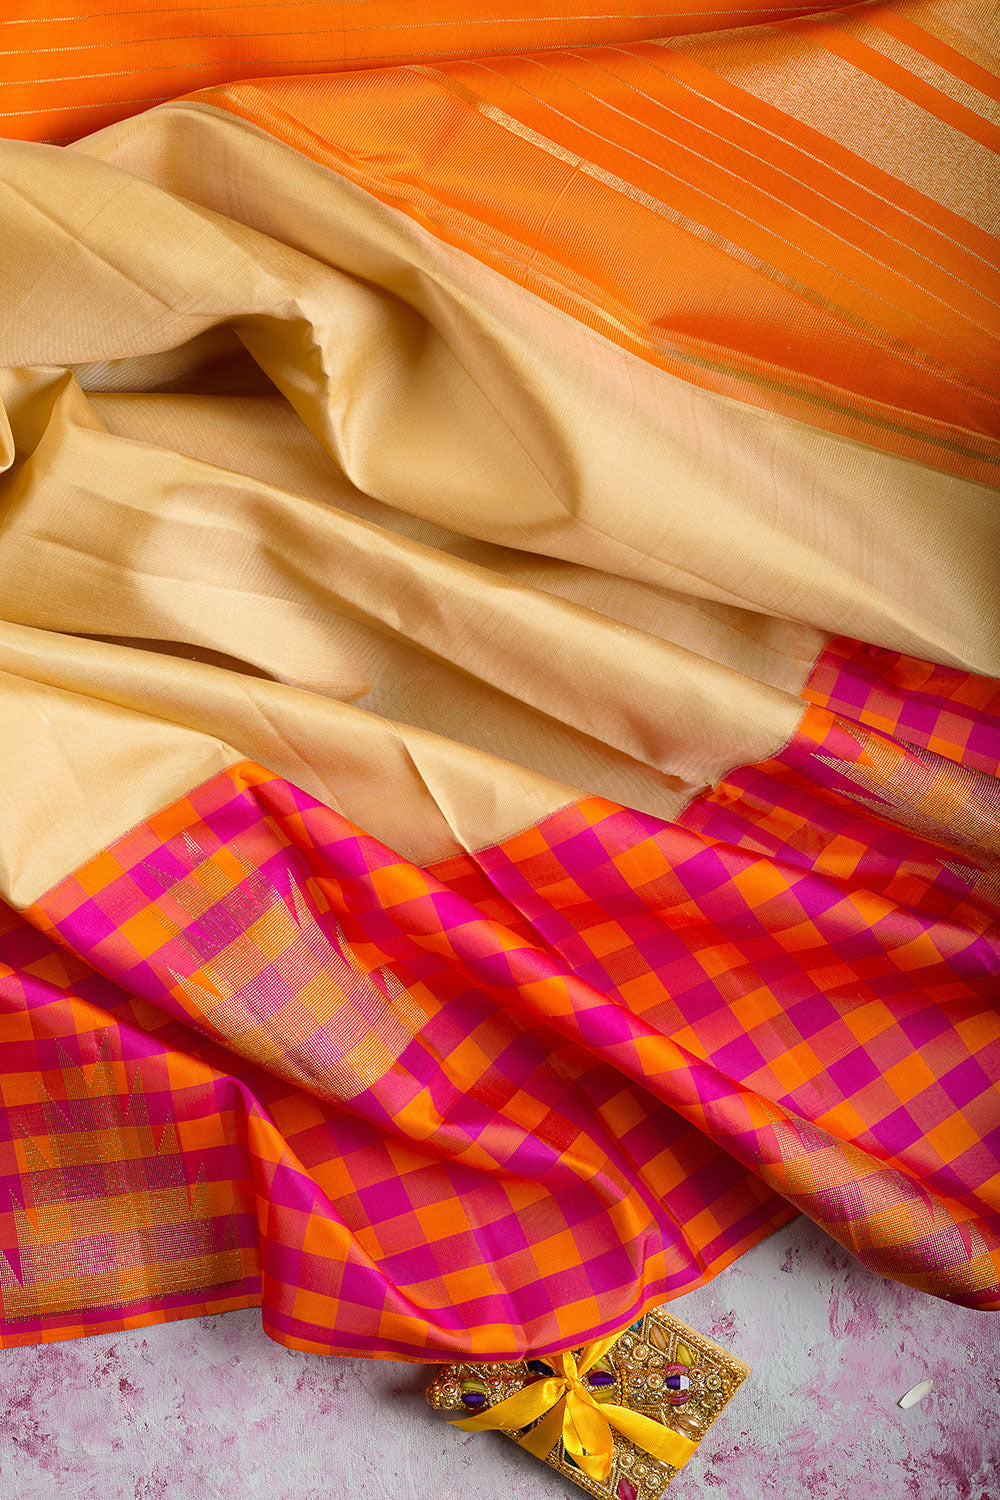 kanjivaram Silk Saree Beige and Small Checked Orange with Pink and Temple Zari border